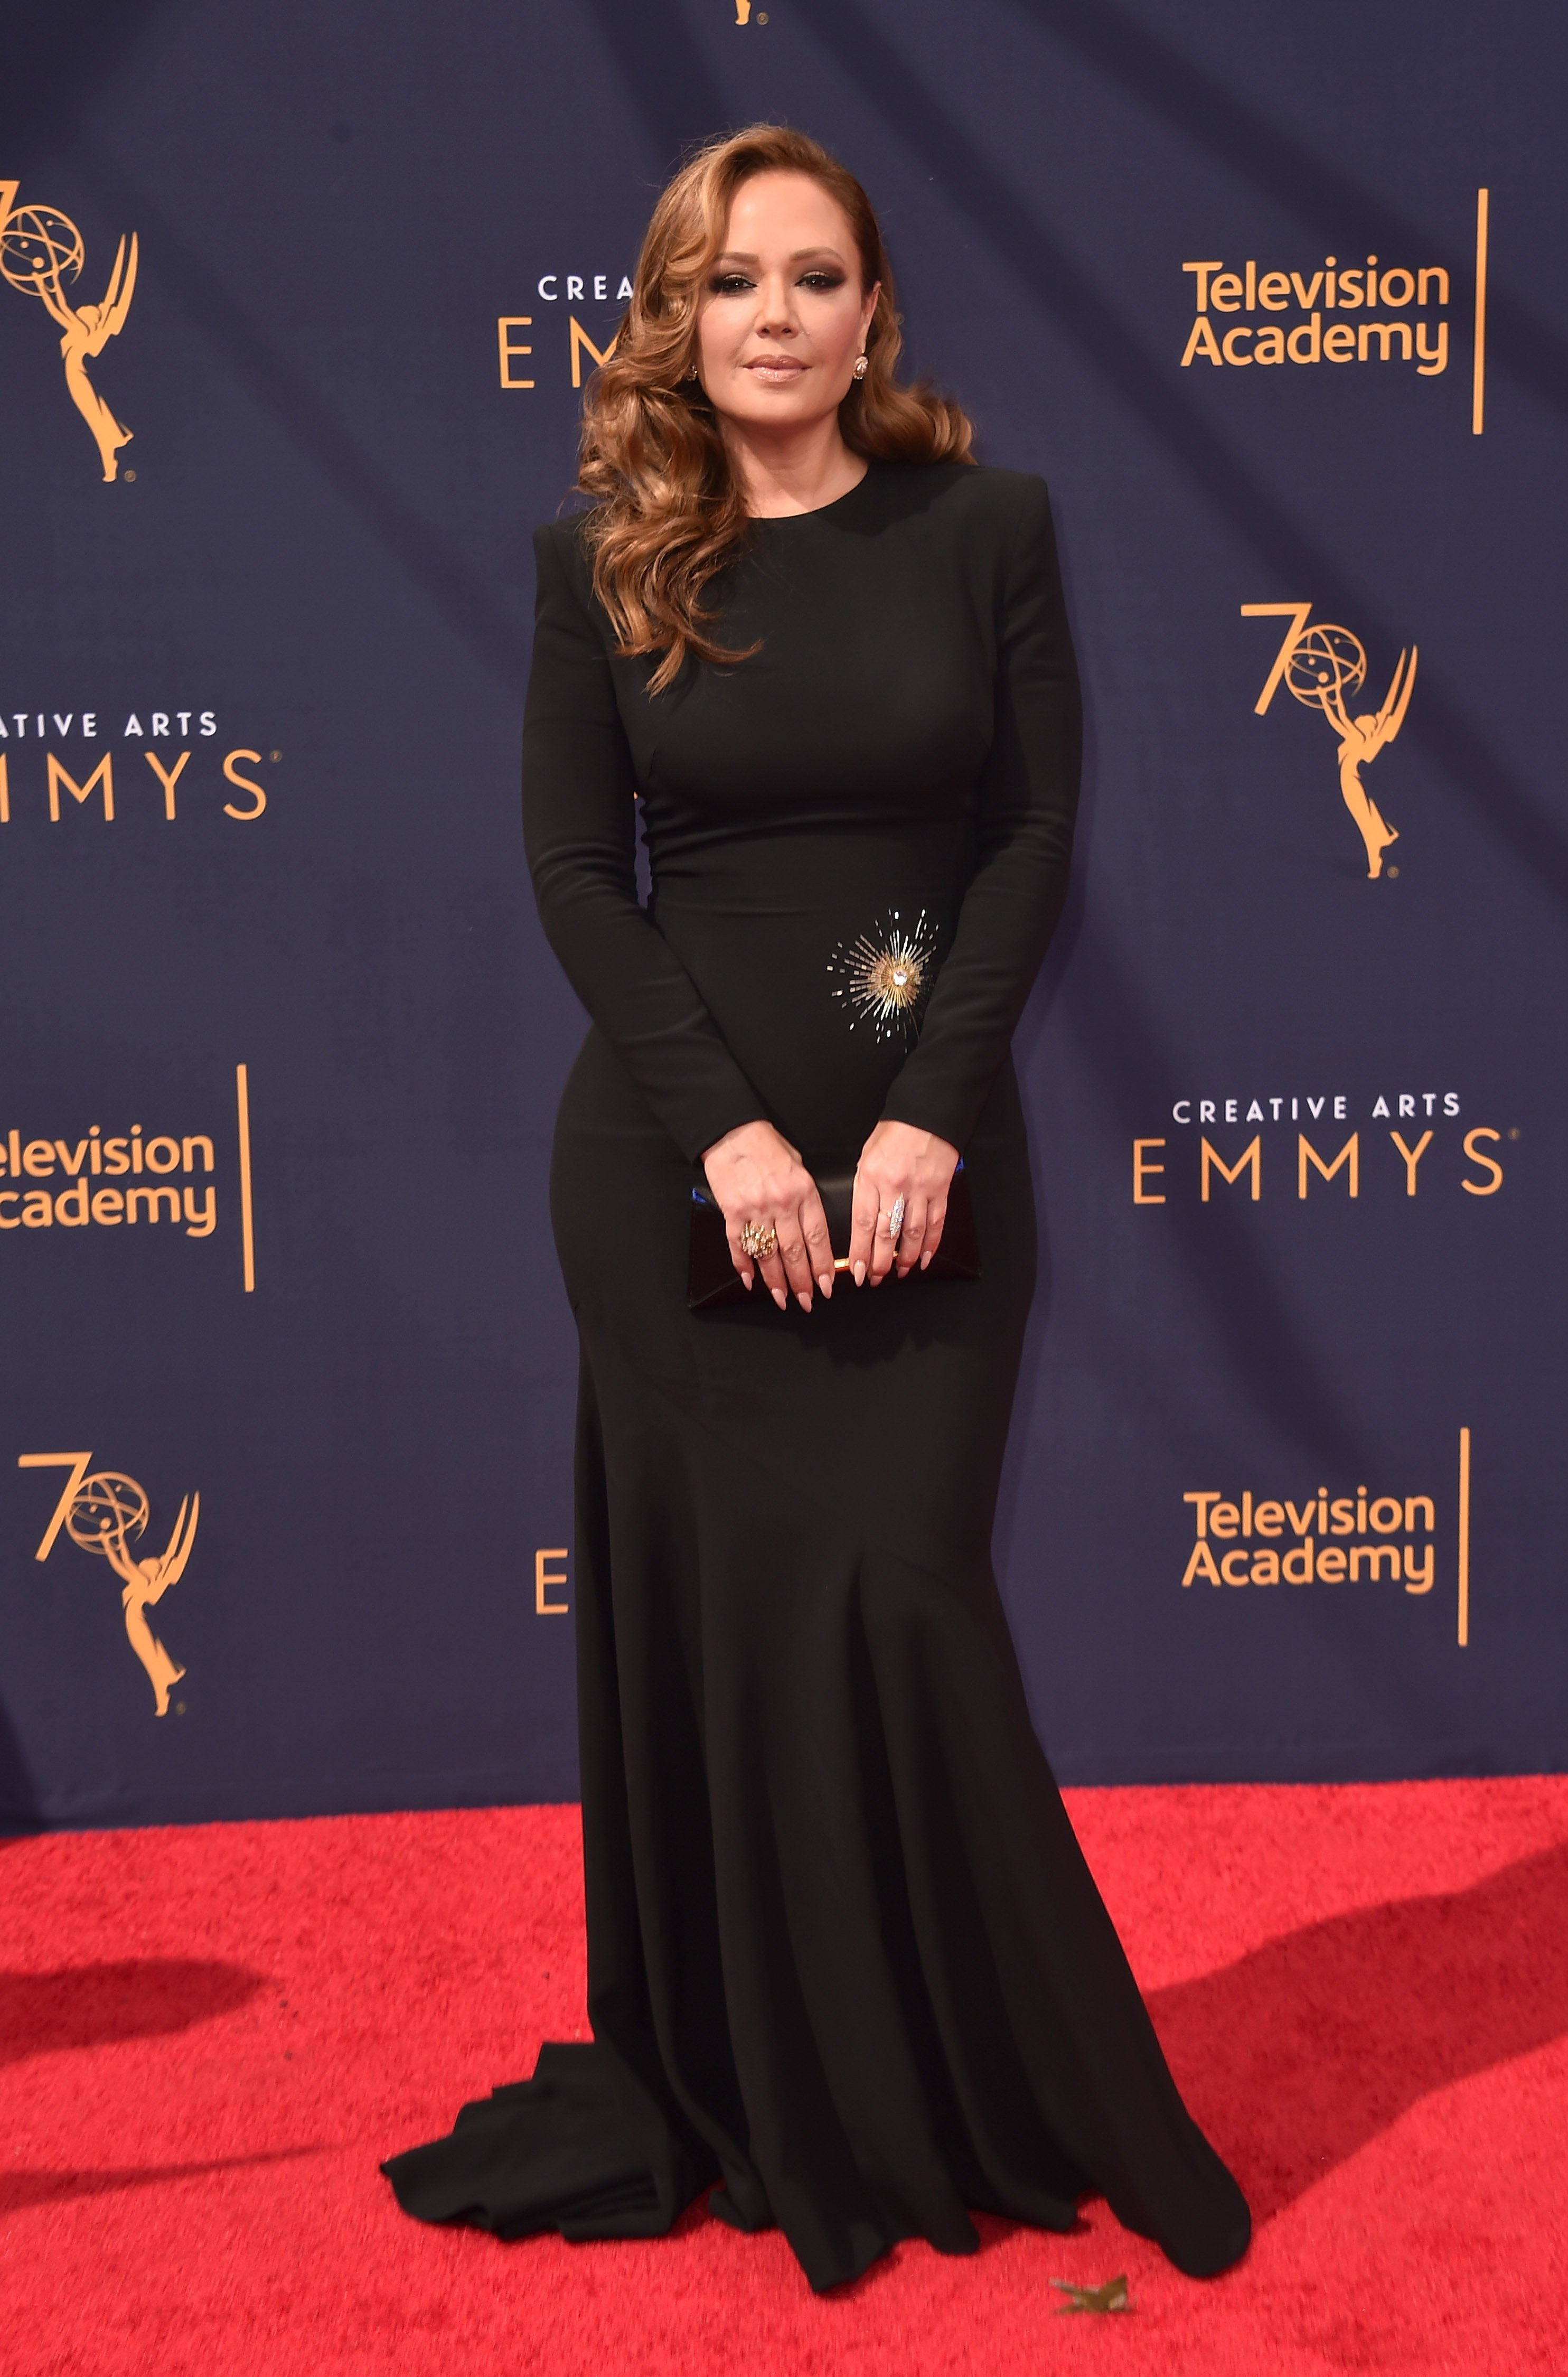 Leah Remini attends the 2018 Creative Arts Emmys Day 2 at Microsoft Theater on September 9, 2018 in Los Angeles, California.  | Photo: GettyImages